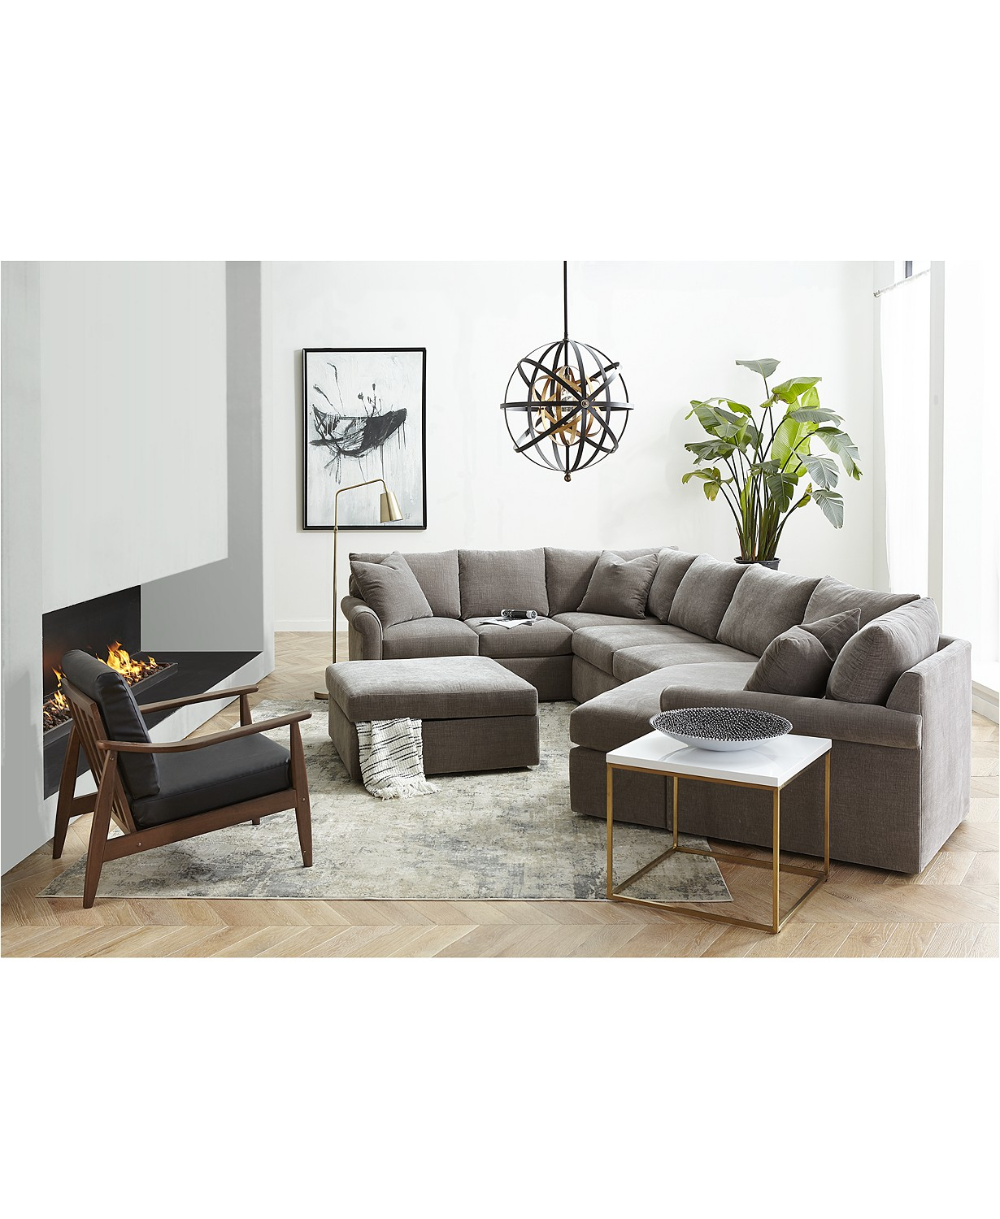 Furniture Wedport 3 Pc Fabric Sofa Return Sleeper Sectional With Cuddler Created For Macy S Reviews Furniture Macy S Fabric Sectional Sofas Sectional Sofa With Chaise Modular Sectional Sofa